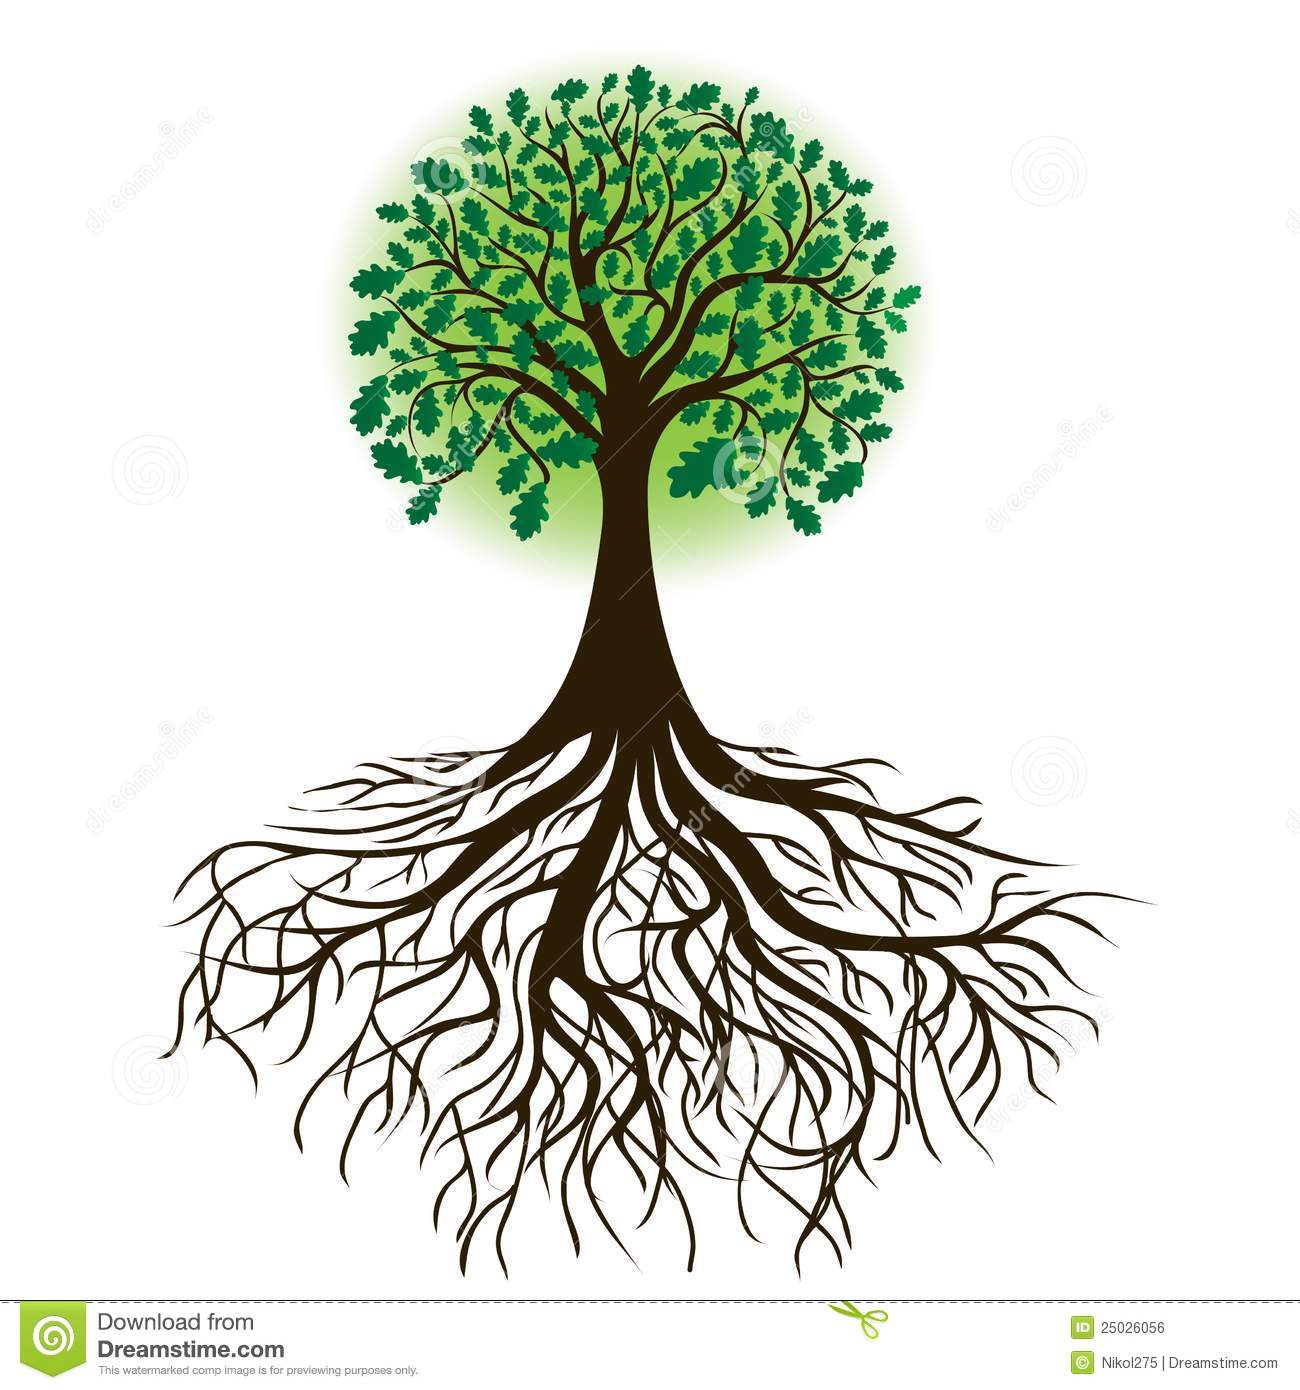 Oak Tree With Roots And Dense Foliage Vector Royalty Free Stock Image